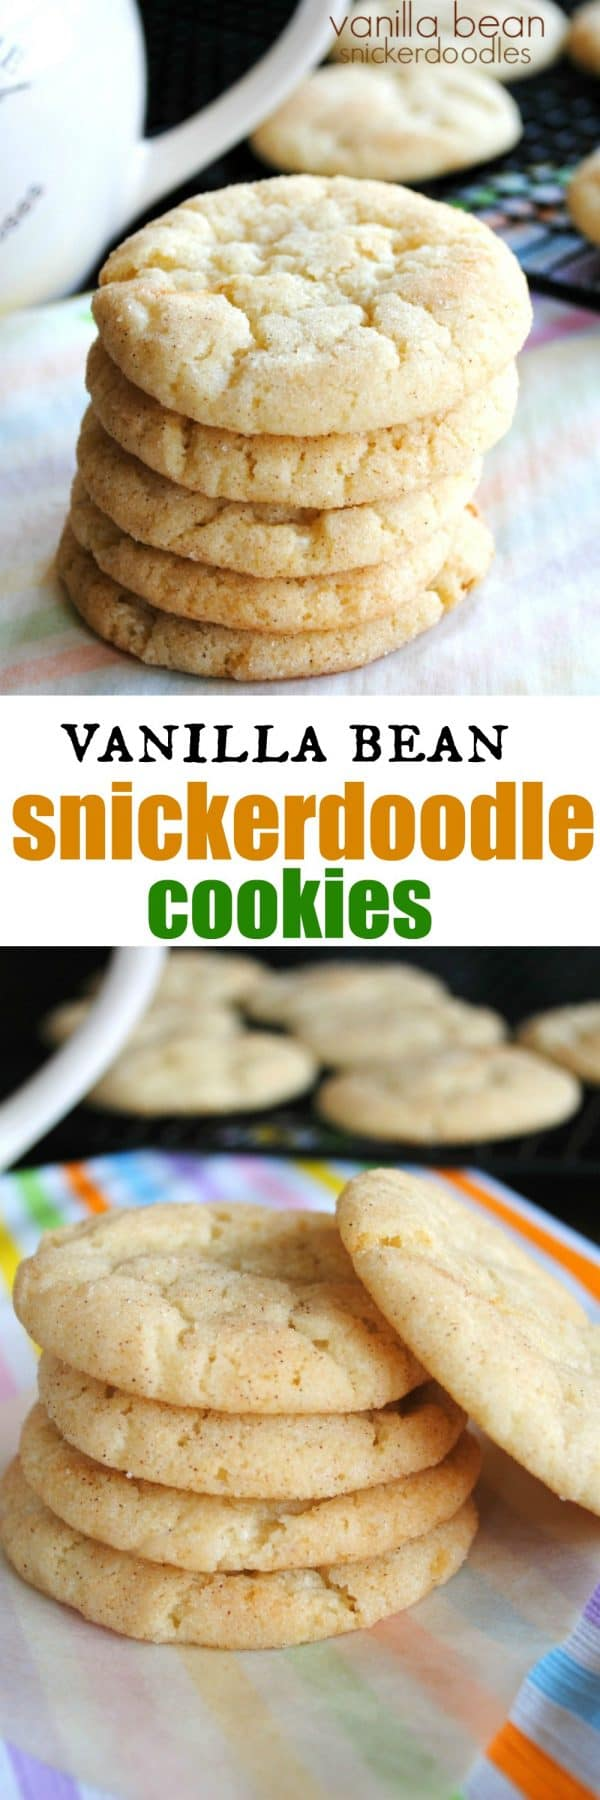 Soft and chewy, these Vanilla Bean Snickerdoodles are a family favorite. Cookies packed with flavor!